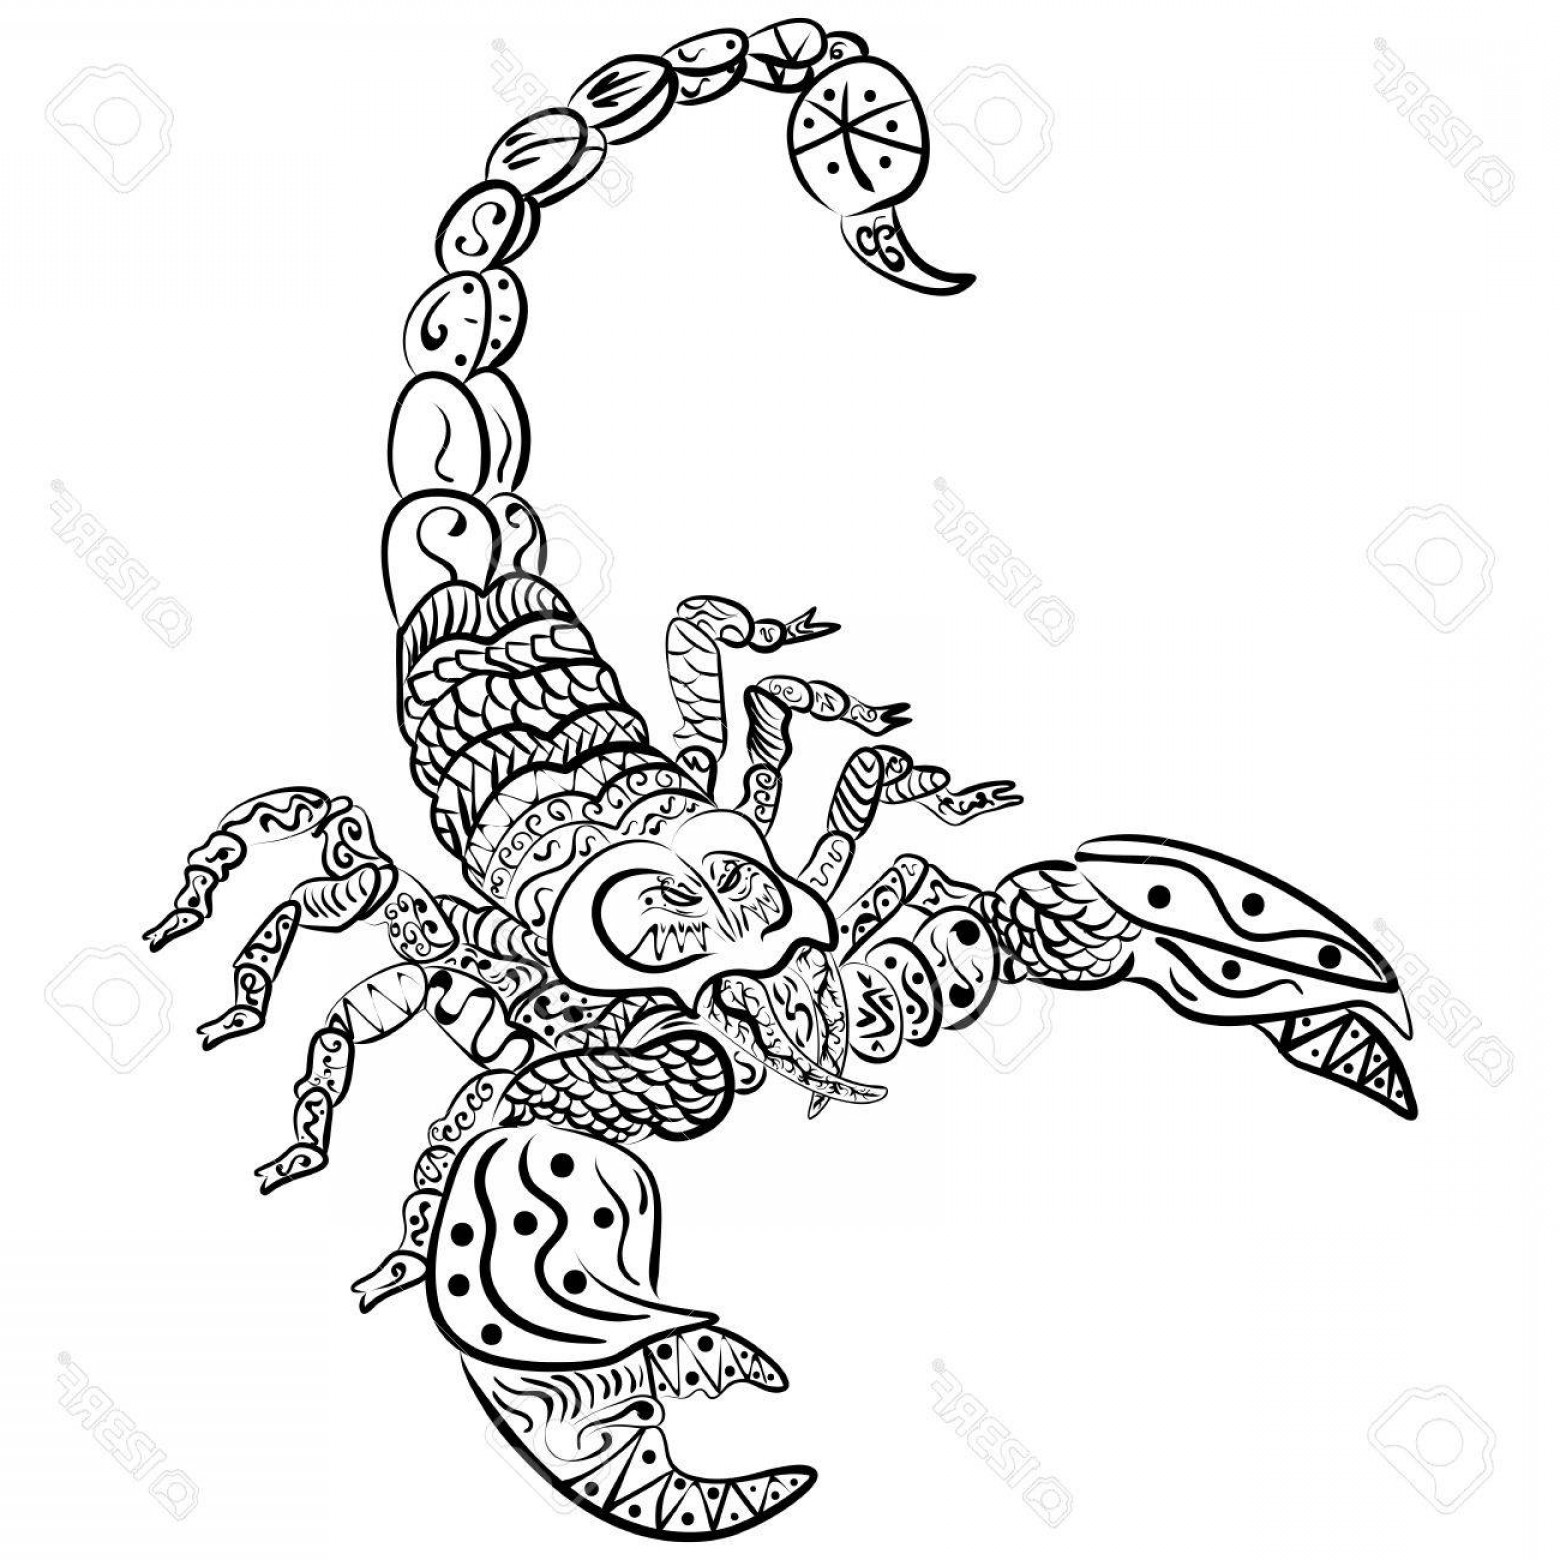 Zentangle Vector: Photostock Vector Zentangle Vector Scorpion Black And White Zentangle Art Ethnic Patterned Illustration Tattoo Poster